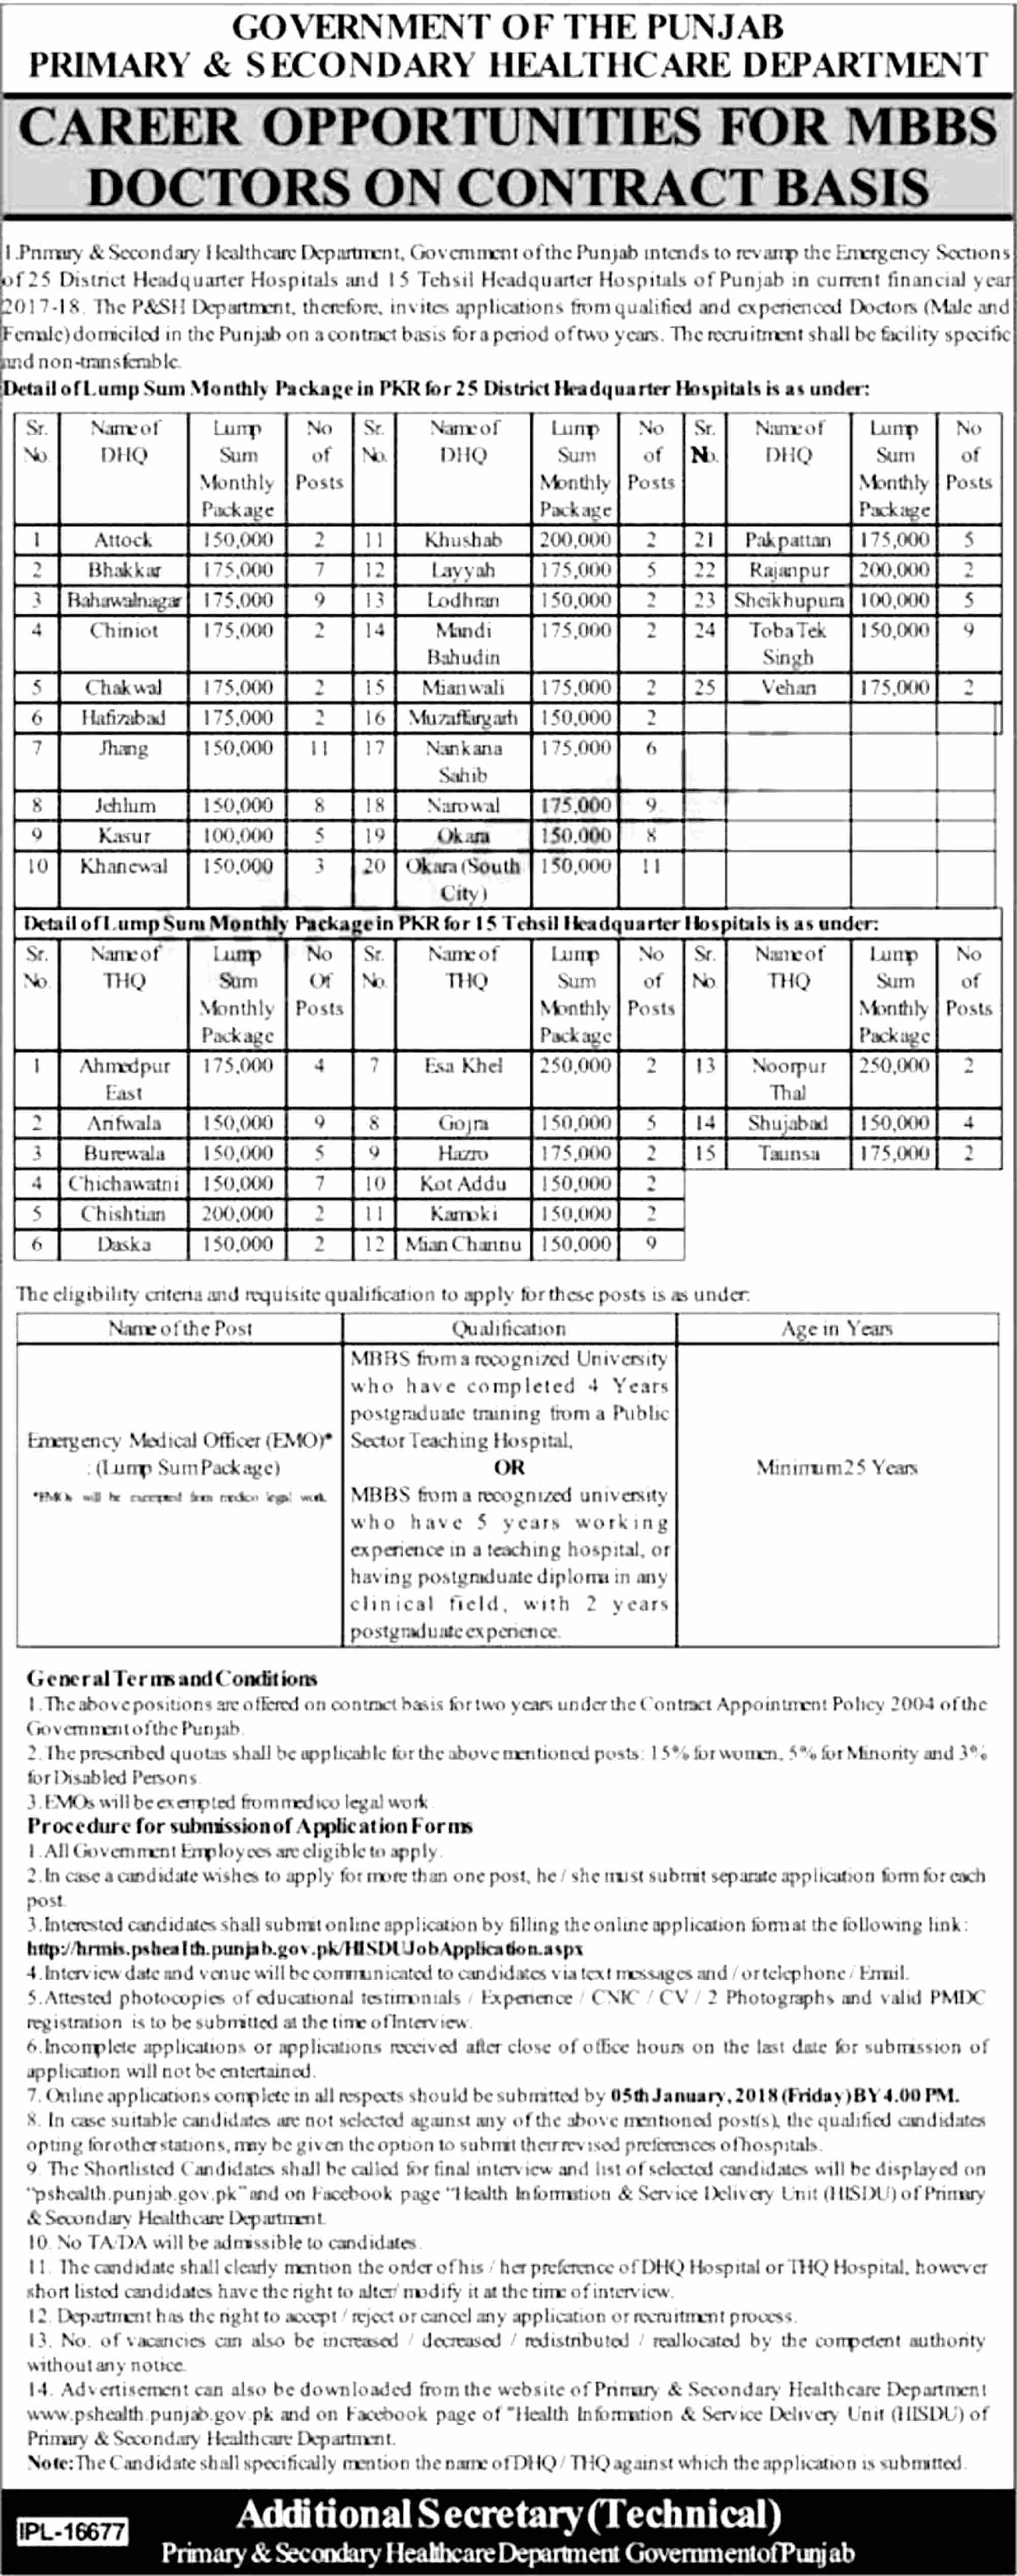 Punjab Primary & Secondary Healthcare 182 Medical Jobs Dunya Newspaper 16/12/2017